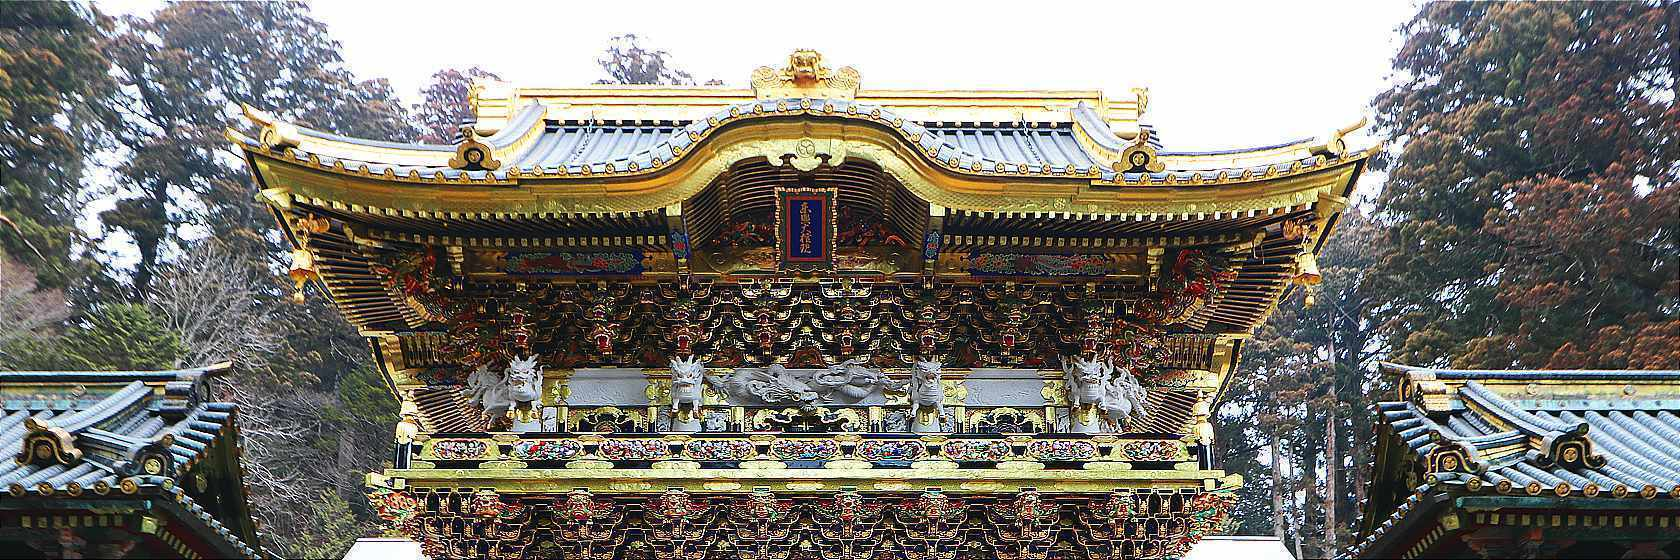 Empotrar insulto Quinto  Nikko Travel Guide - What to see and do in Nikko